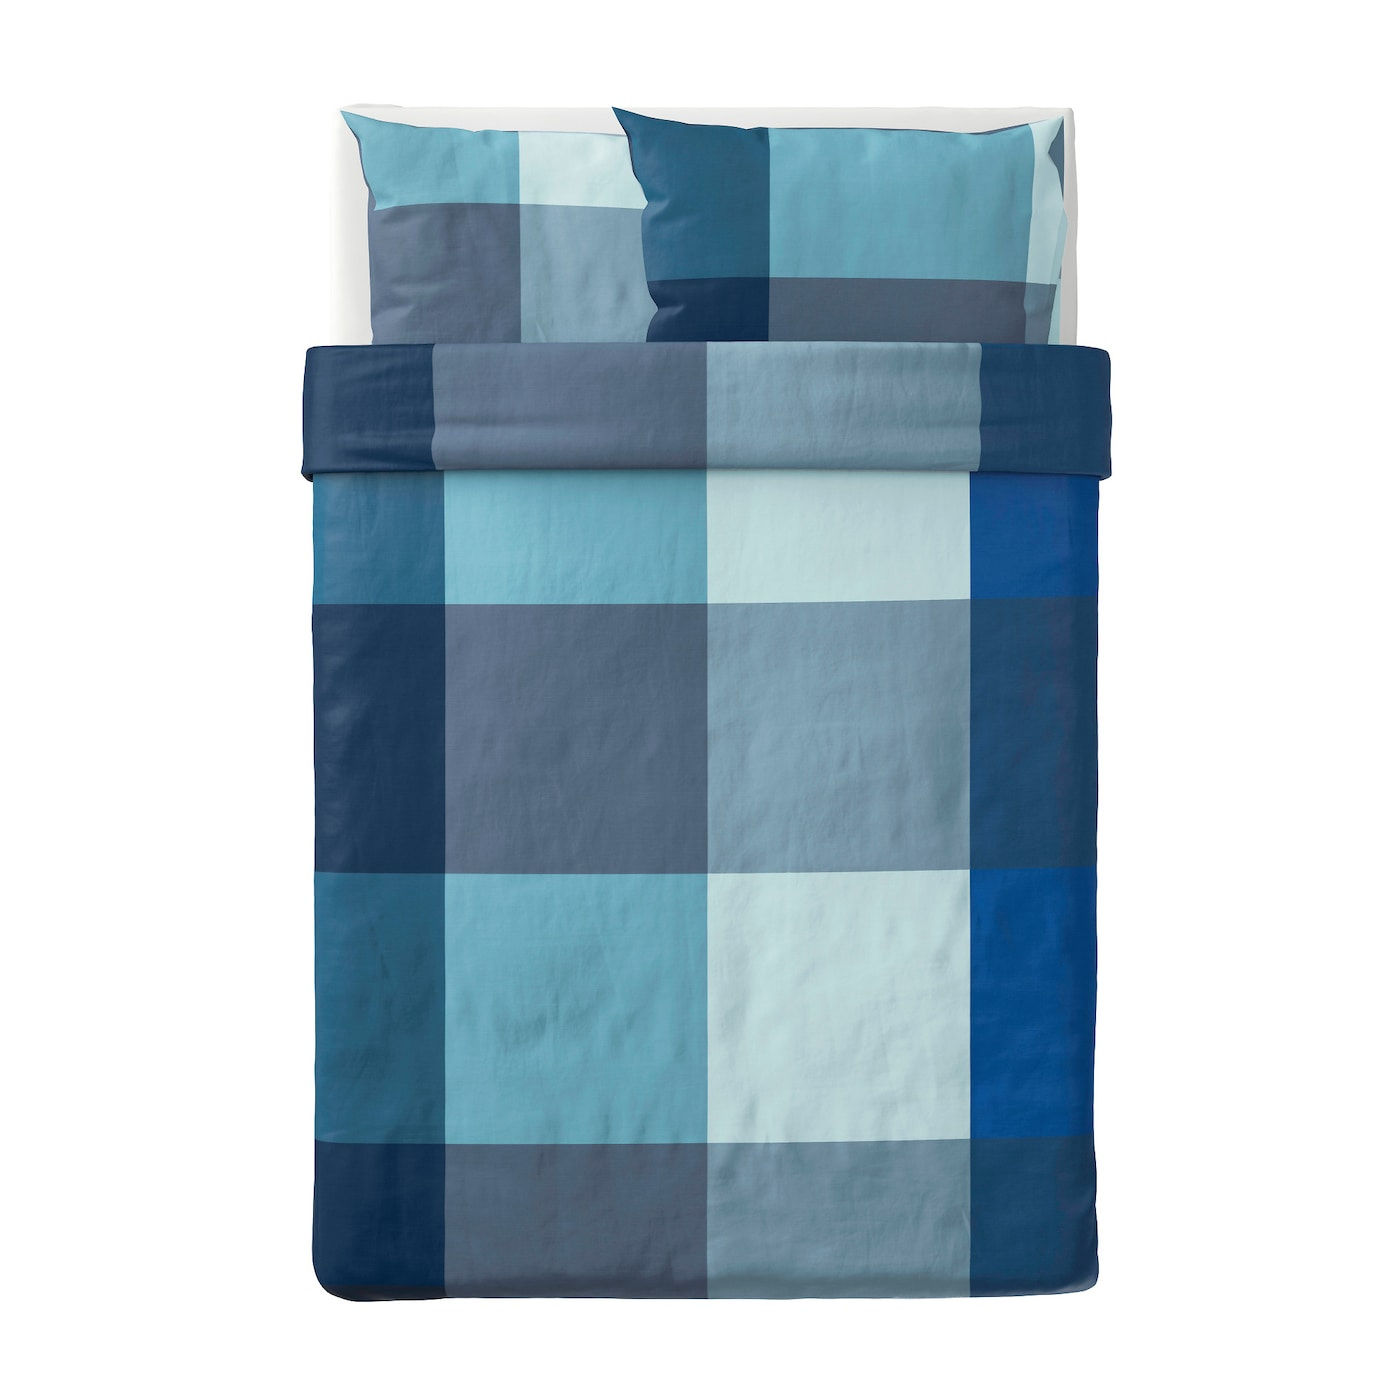 Duvet Covers & Bedroom Sets